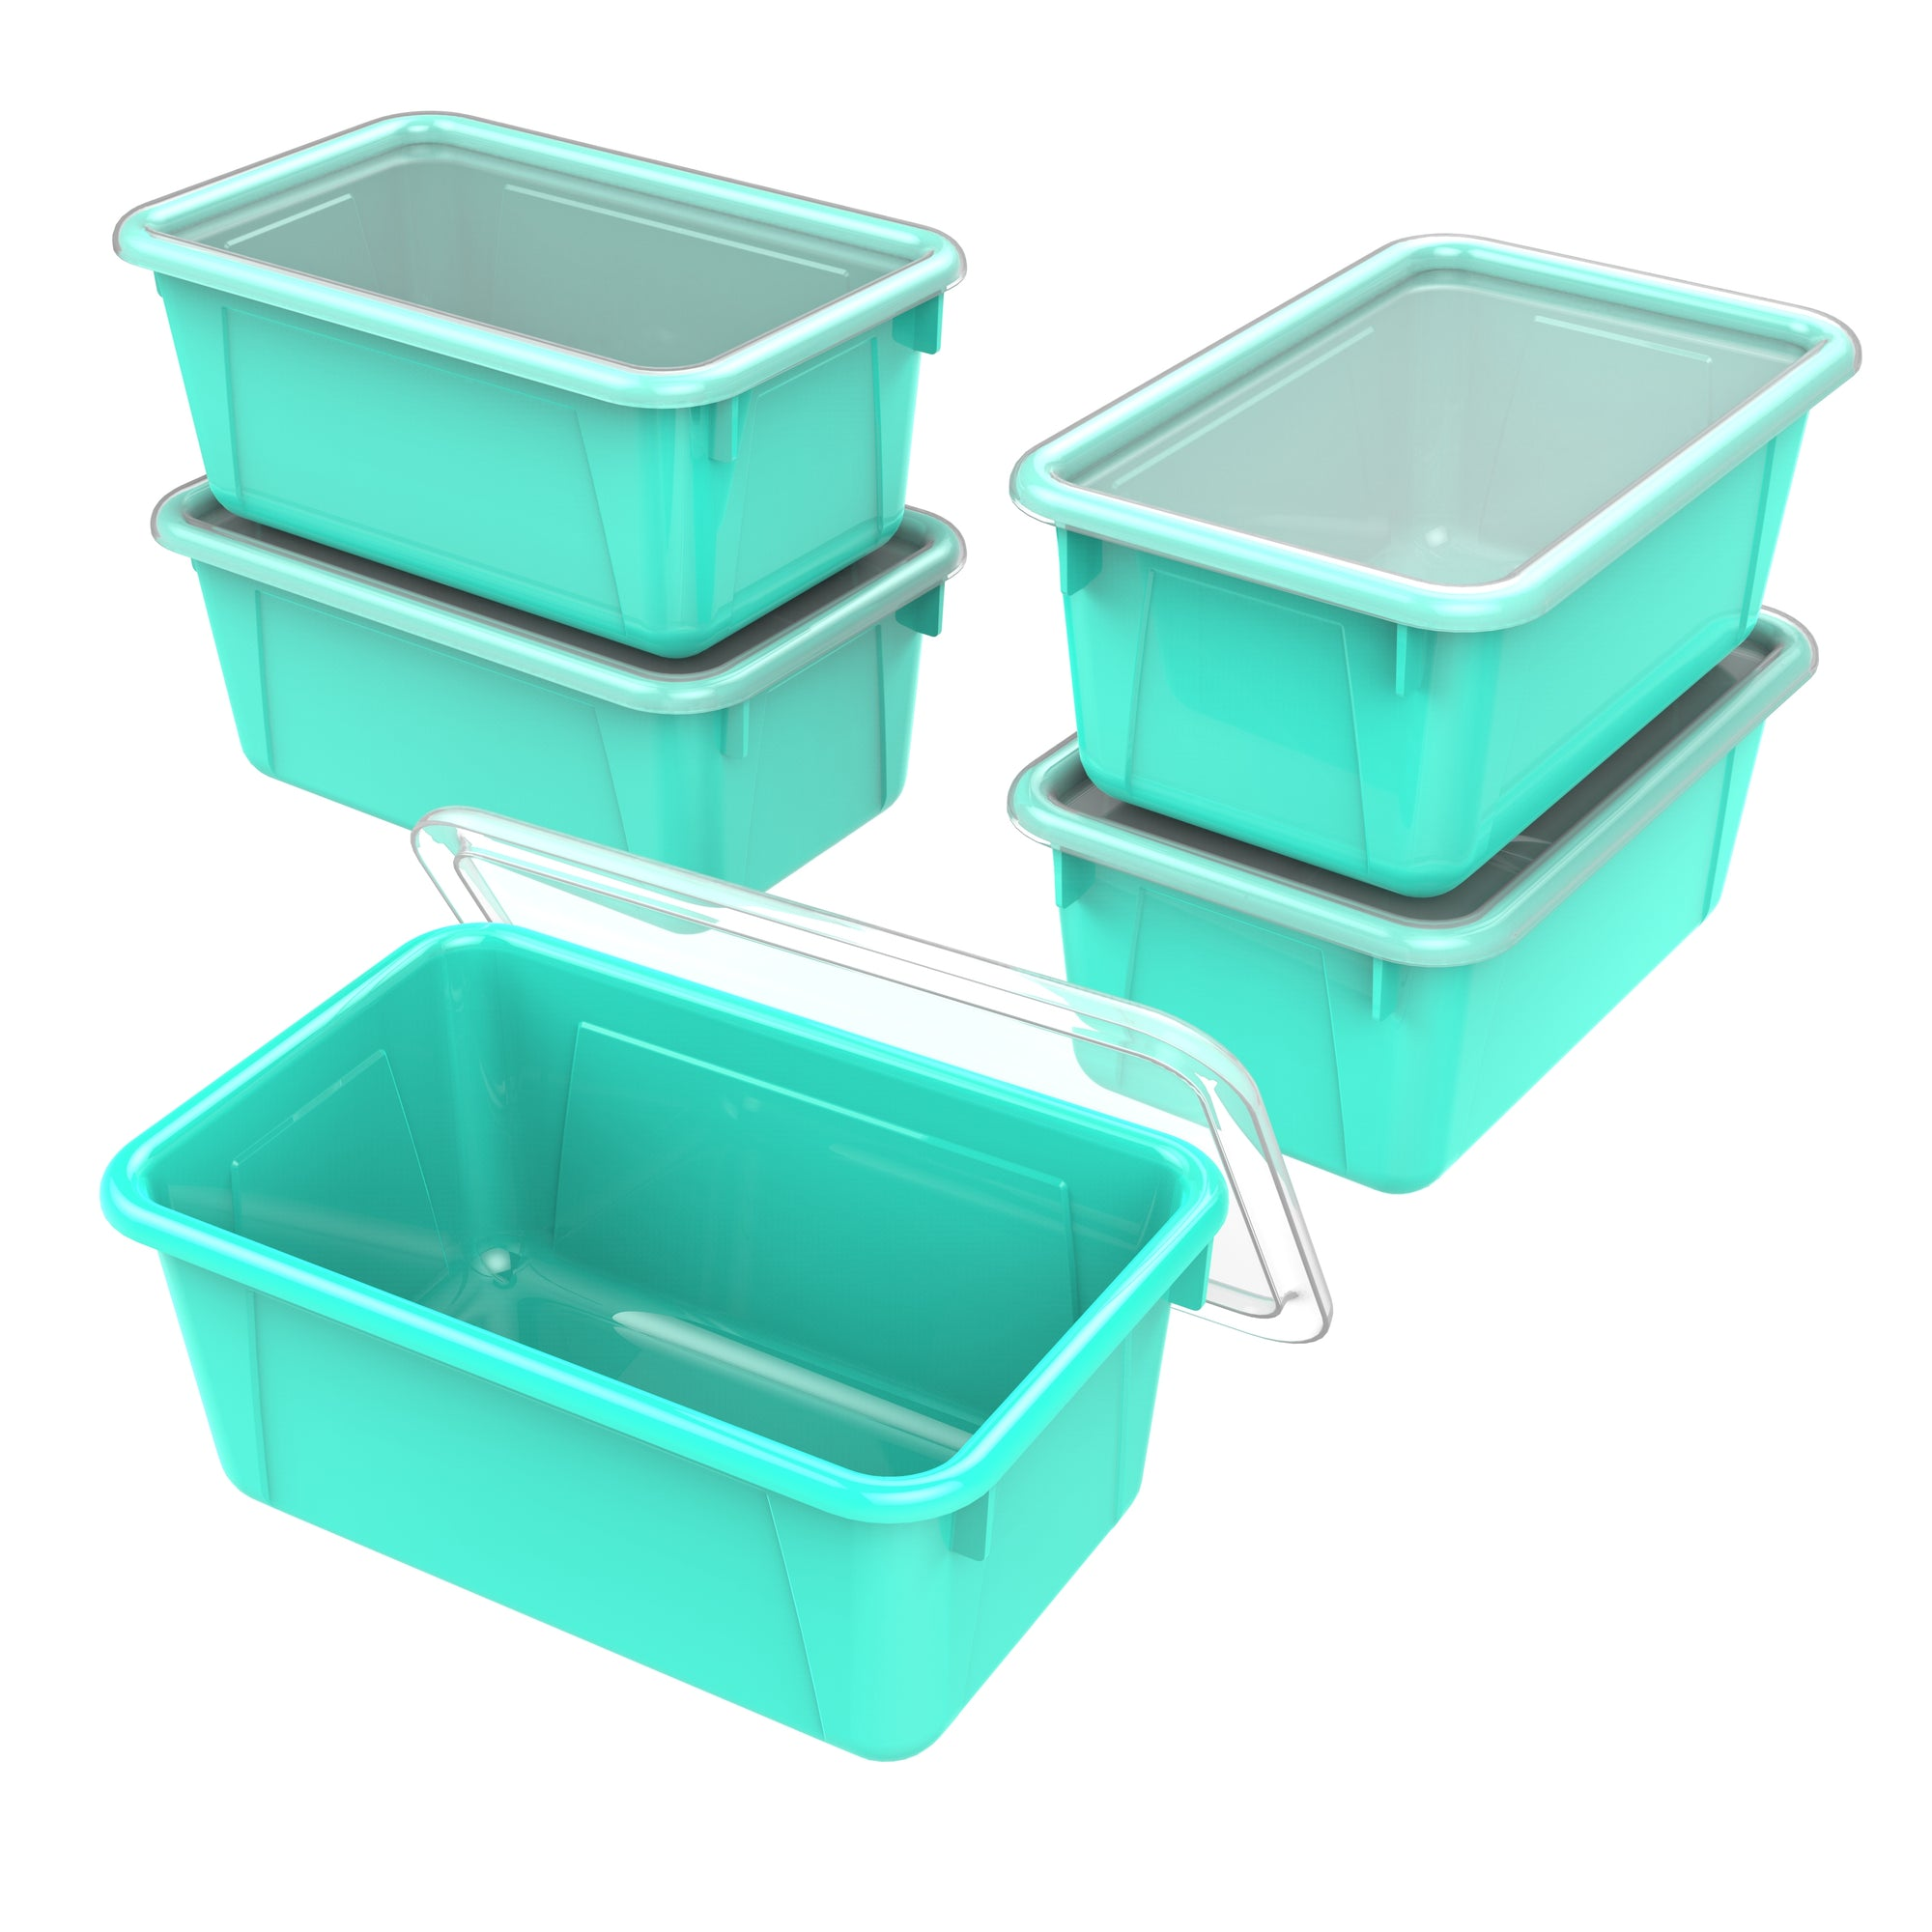 Small Cubby Bin with lid, Teal (5 units/pack)